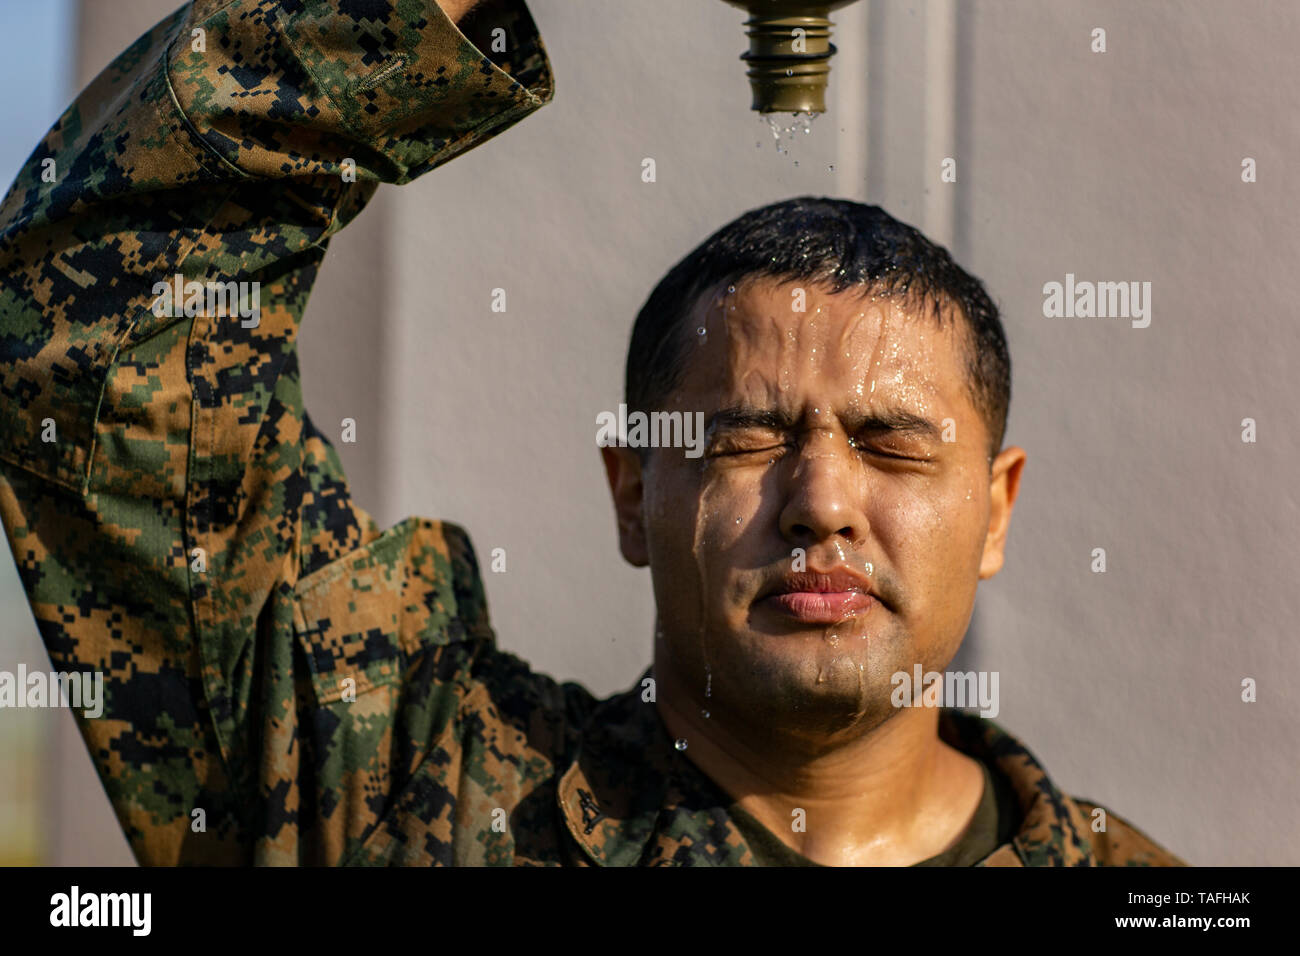 Iwakuni, Japan. 23rd May, 2019. U.S. Marine Corps Lance Cpl. Cesar Ramirez pours a canteen of water on his head to cool off after a conditioning hike on a hot day at Marine Corps Air Station May 23, 2019 in Iwakuni, Japan. Credit: Planetpix/Alamy Live News Stock Photo